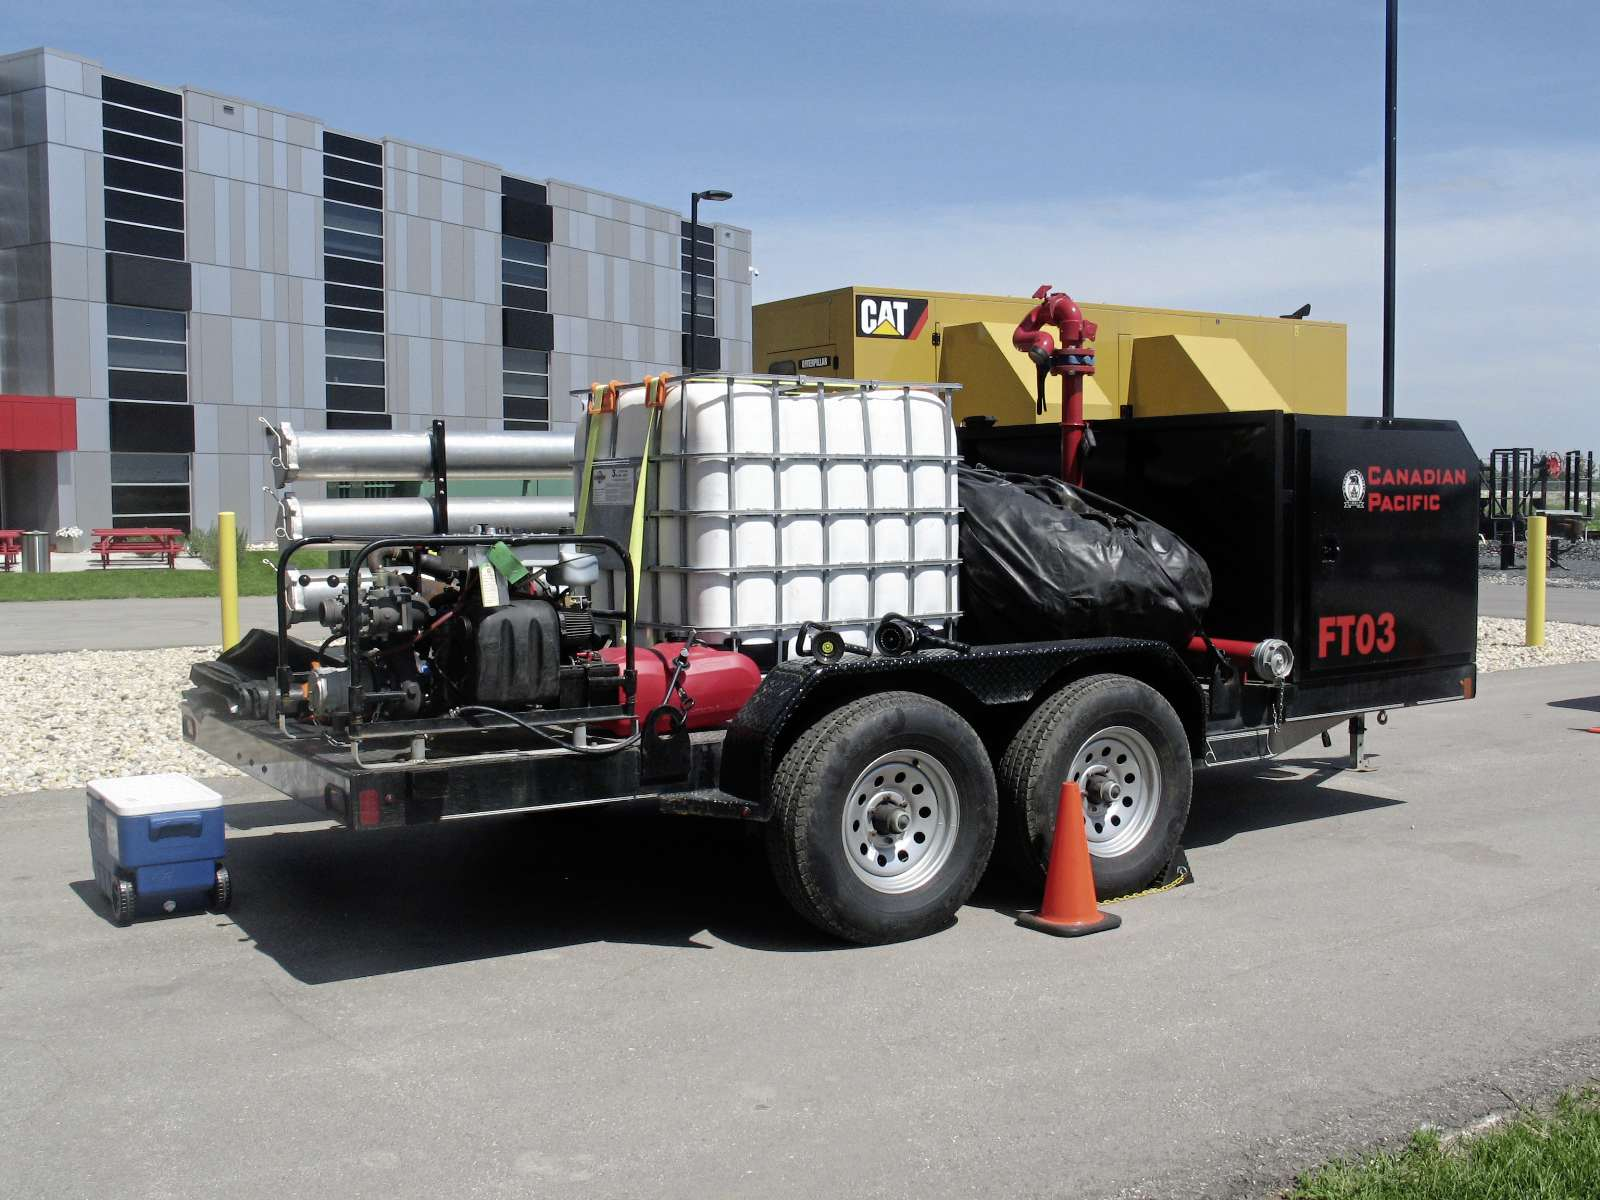 A fully functional CP firefighting trailer. Over 100 railway workers and first responders took part in a TRANSCAER training event at the CN Campus, Transcona Yard this year. (SHELDON BIRNIE/CANSTAR COMMUNITY NEWS/THE HERALD) (SHELDON BIRNIE)